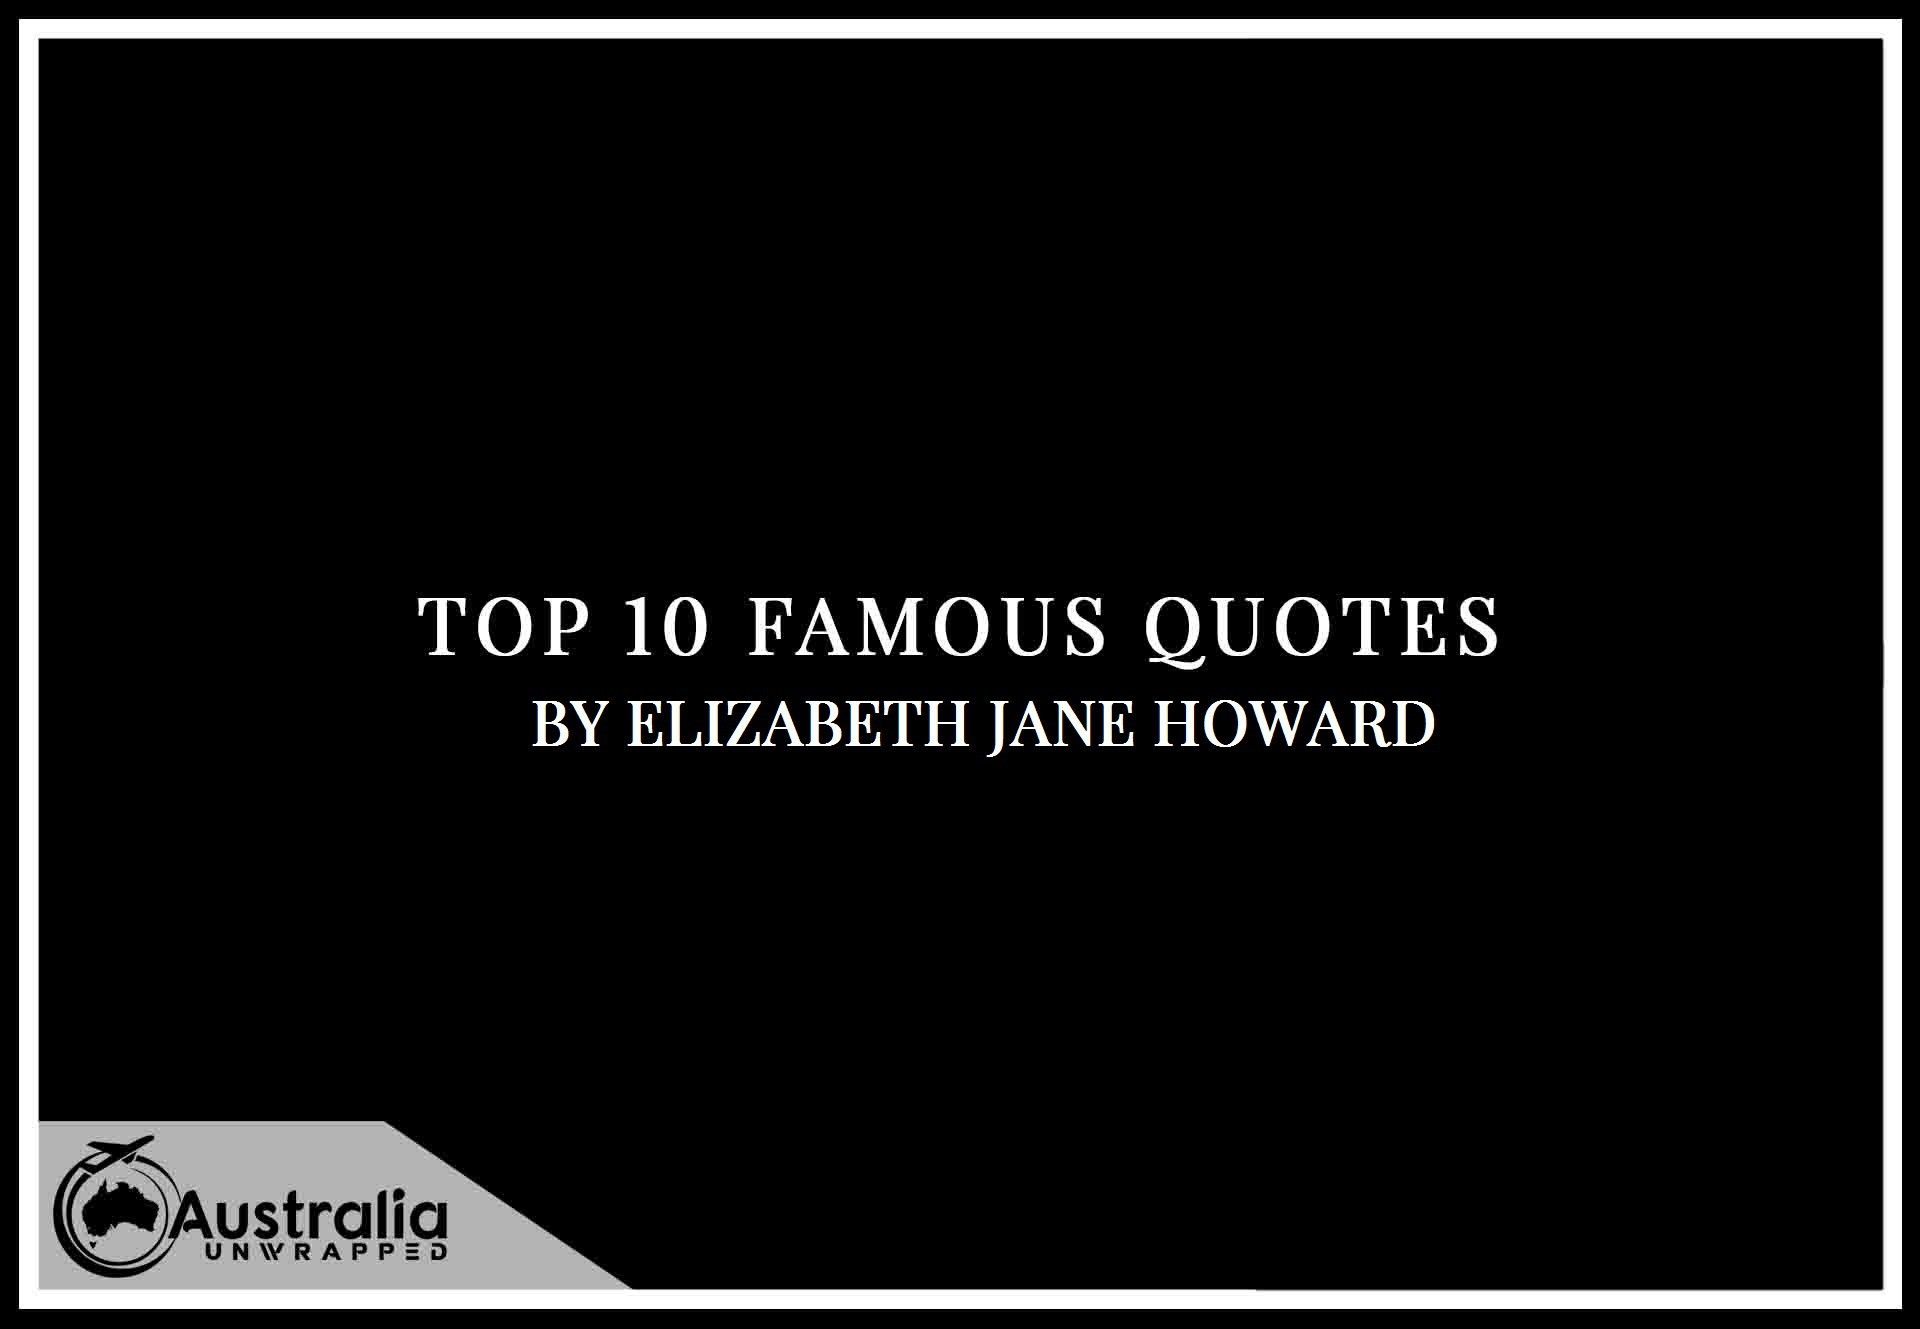 Elizabeth Jane Howard's Top 10 Popular and Famous Quotes